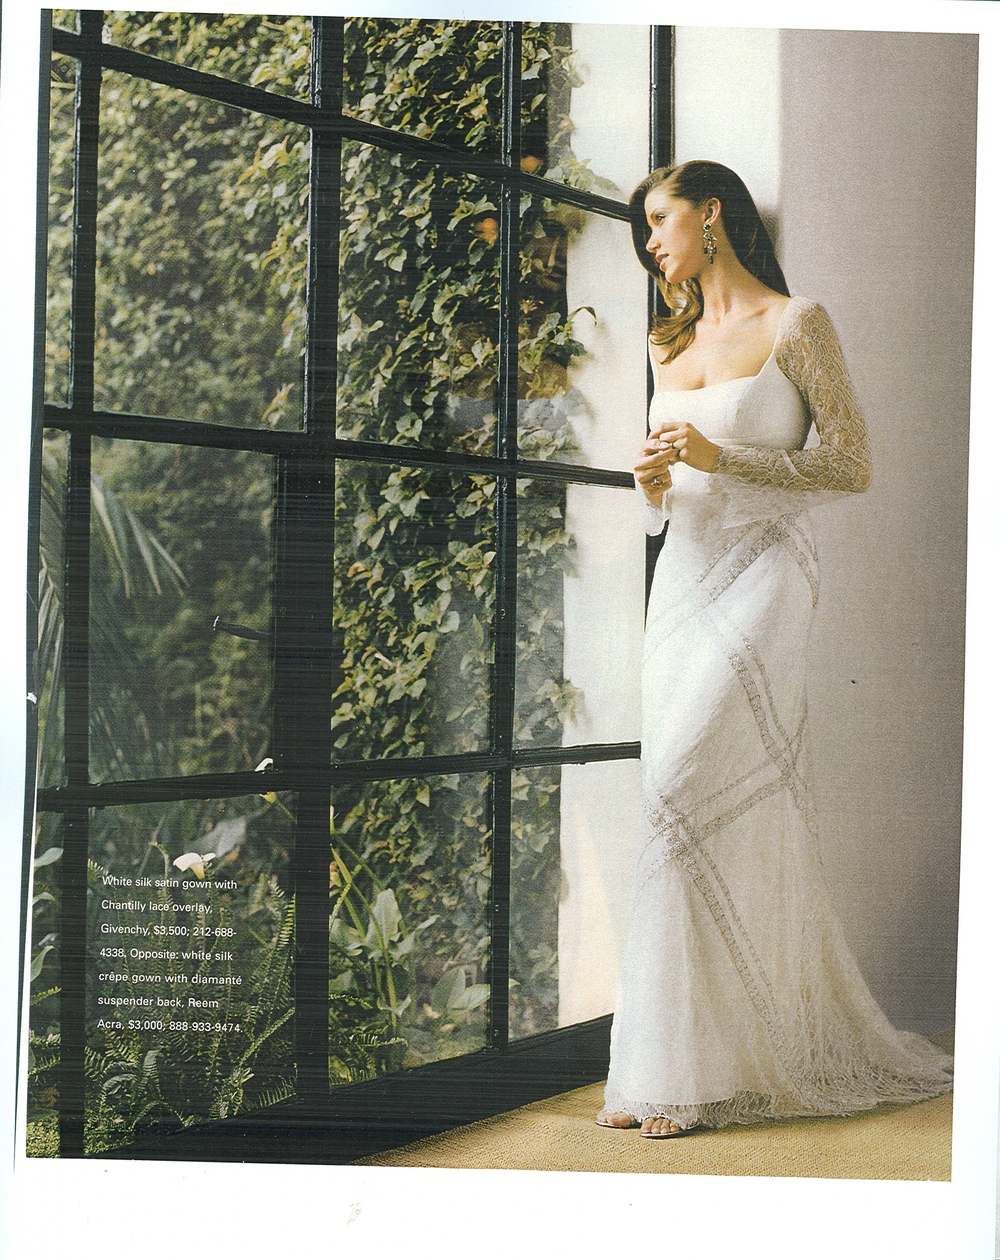 SE_InStyle Weddings_Summer 2002_8.jpg